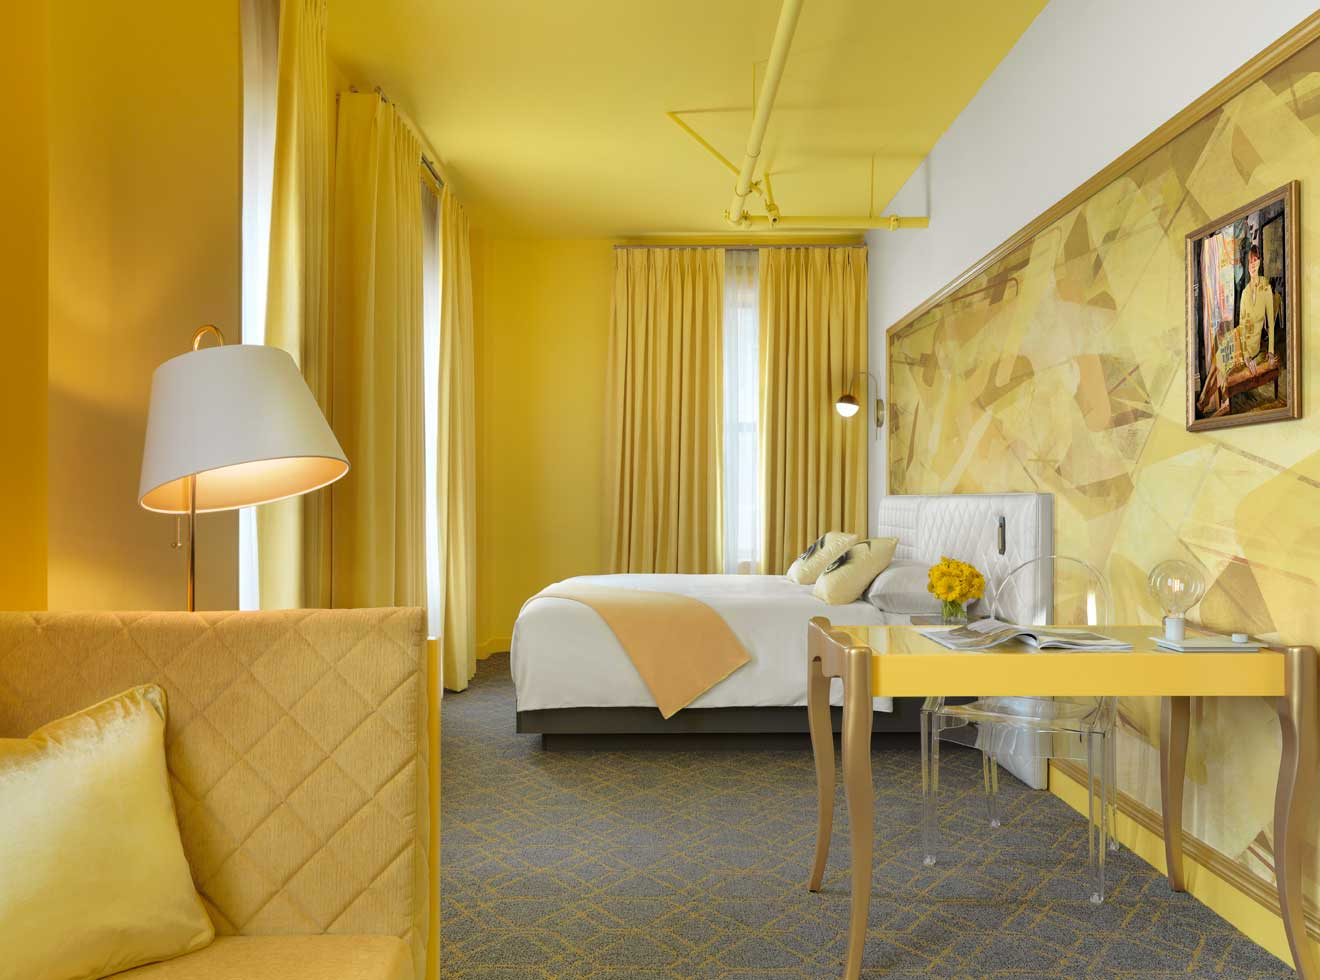 Angad Arts Hotel yellow room